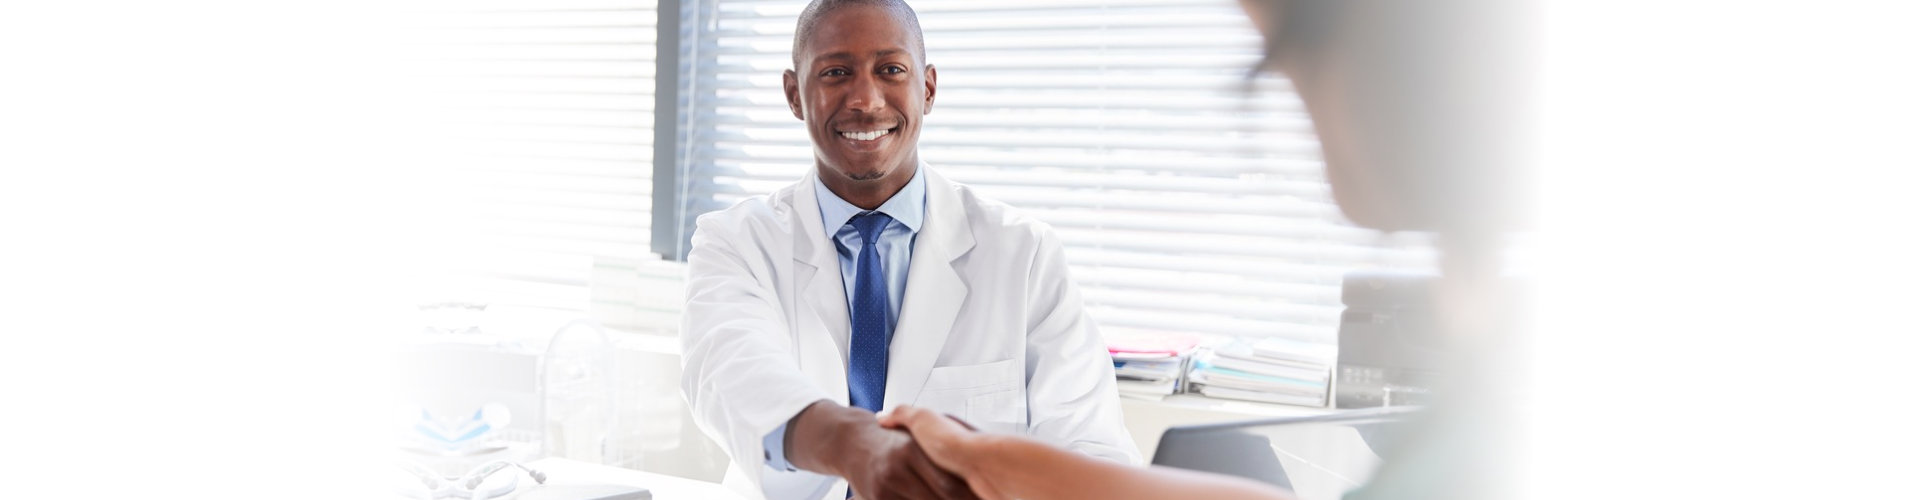 doctor shaking hans with a patient on his office